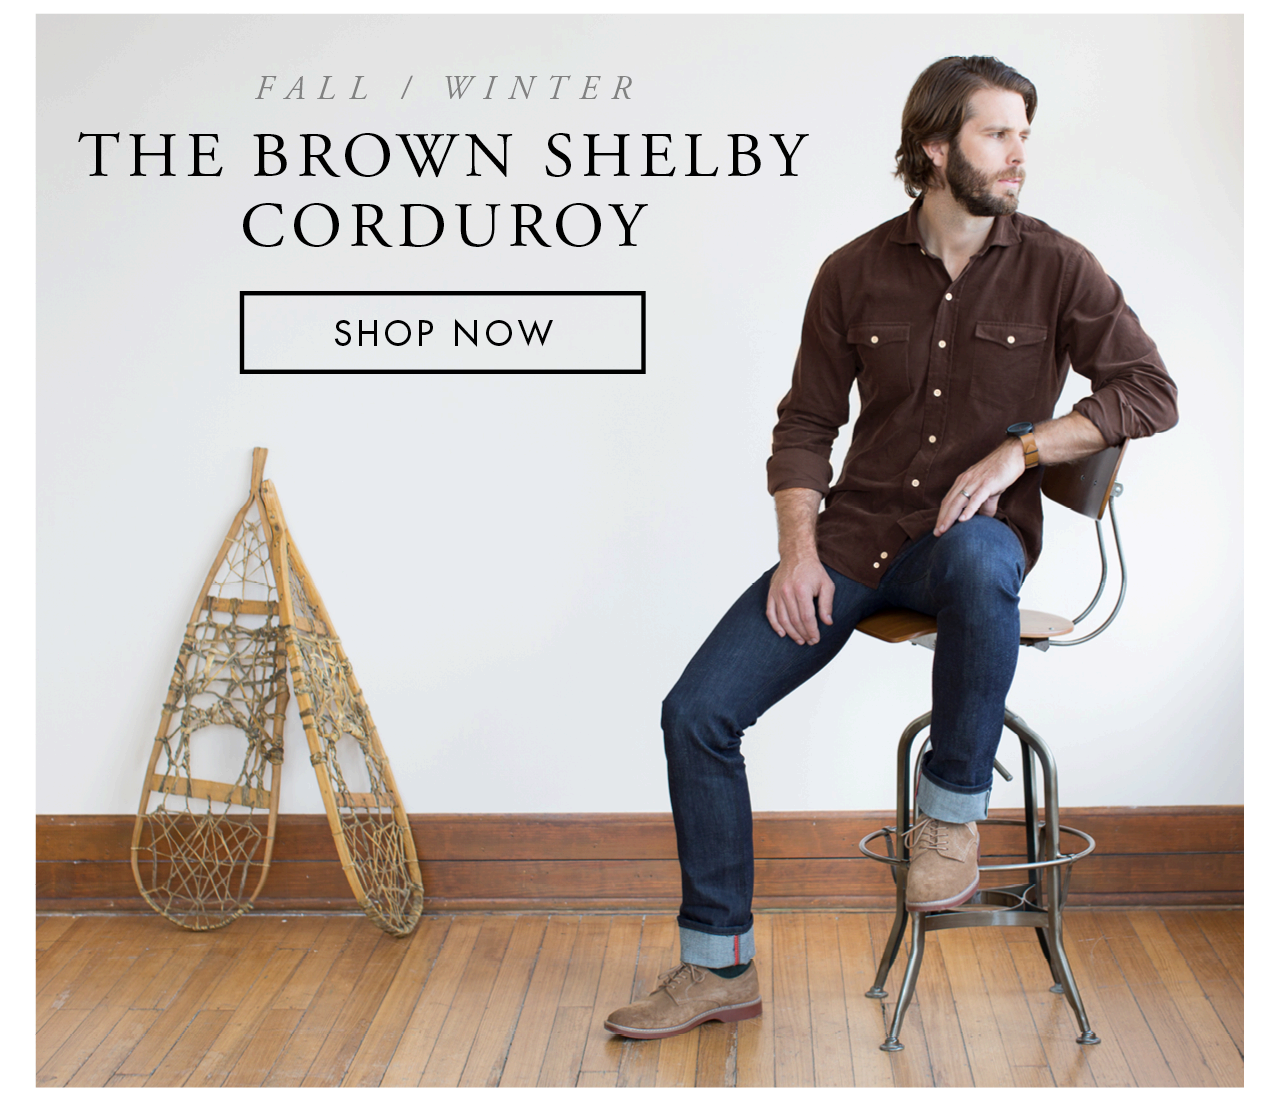 The Brown Shelby Corduroy